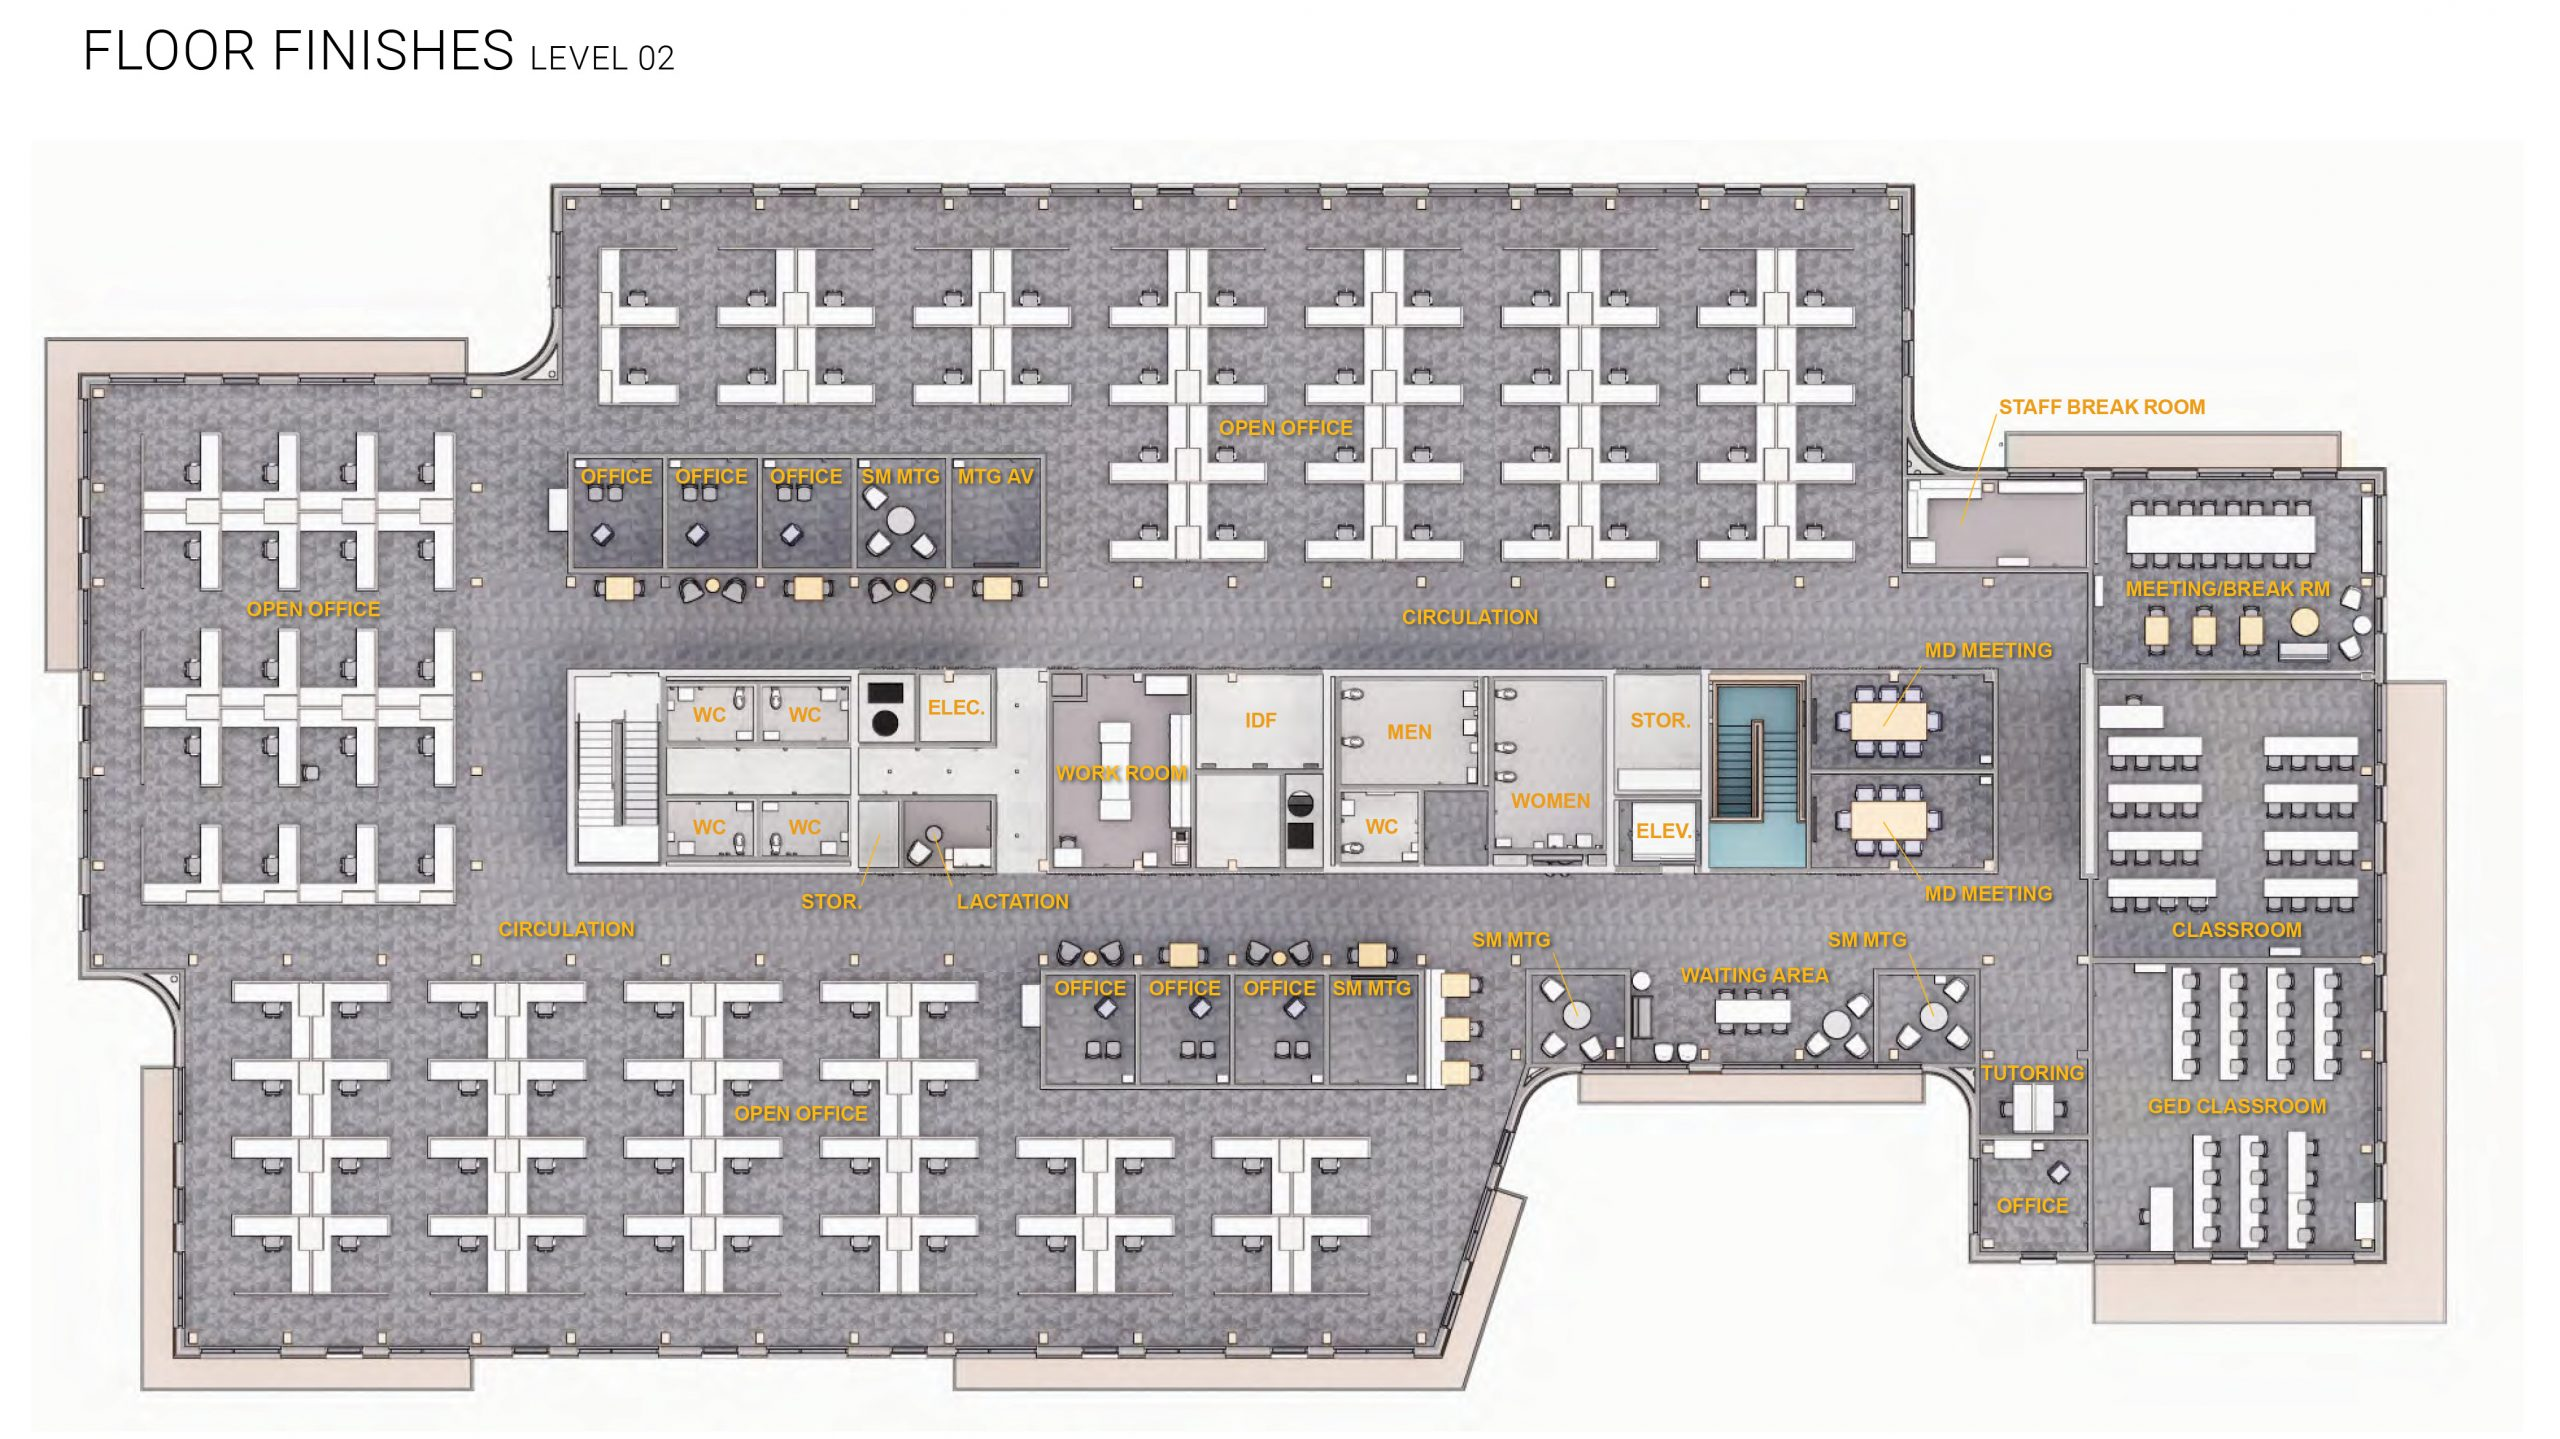 PMWTC level 2 floor plan with labels